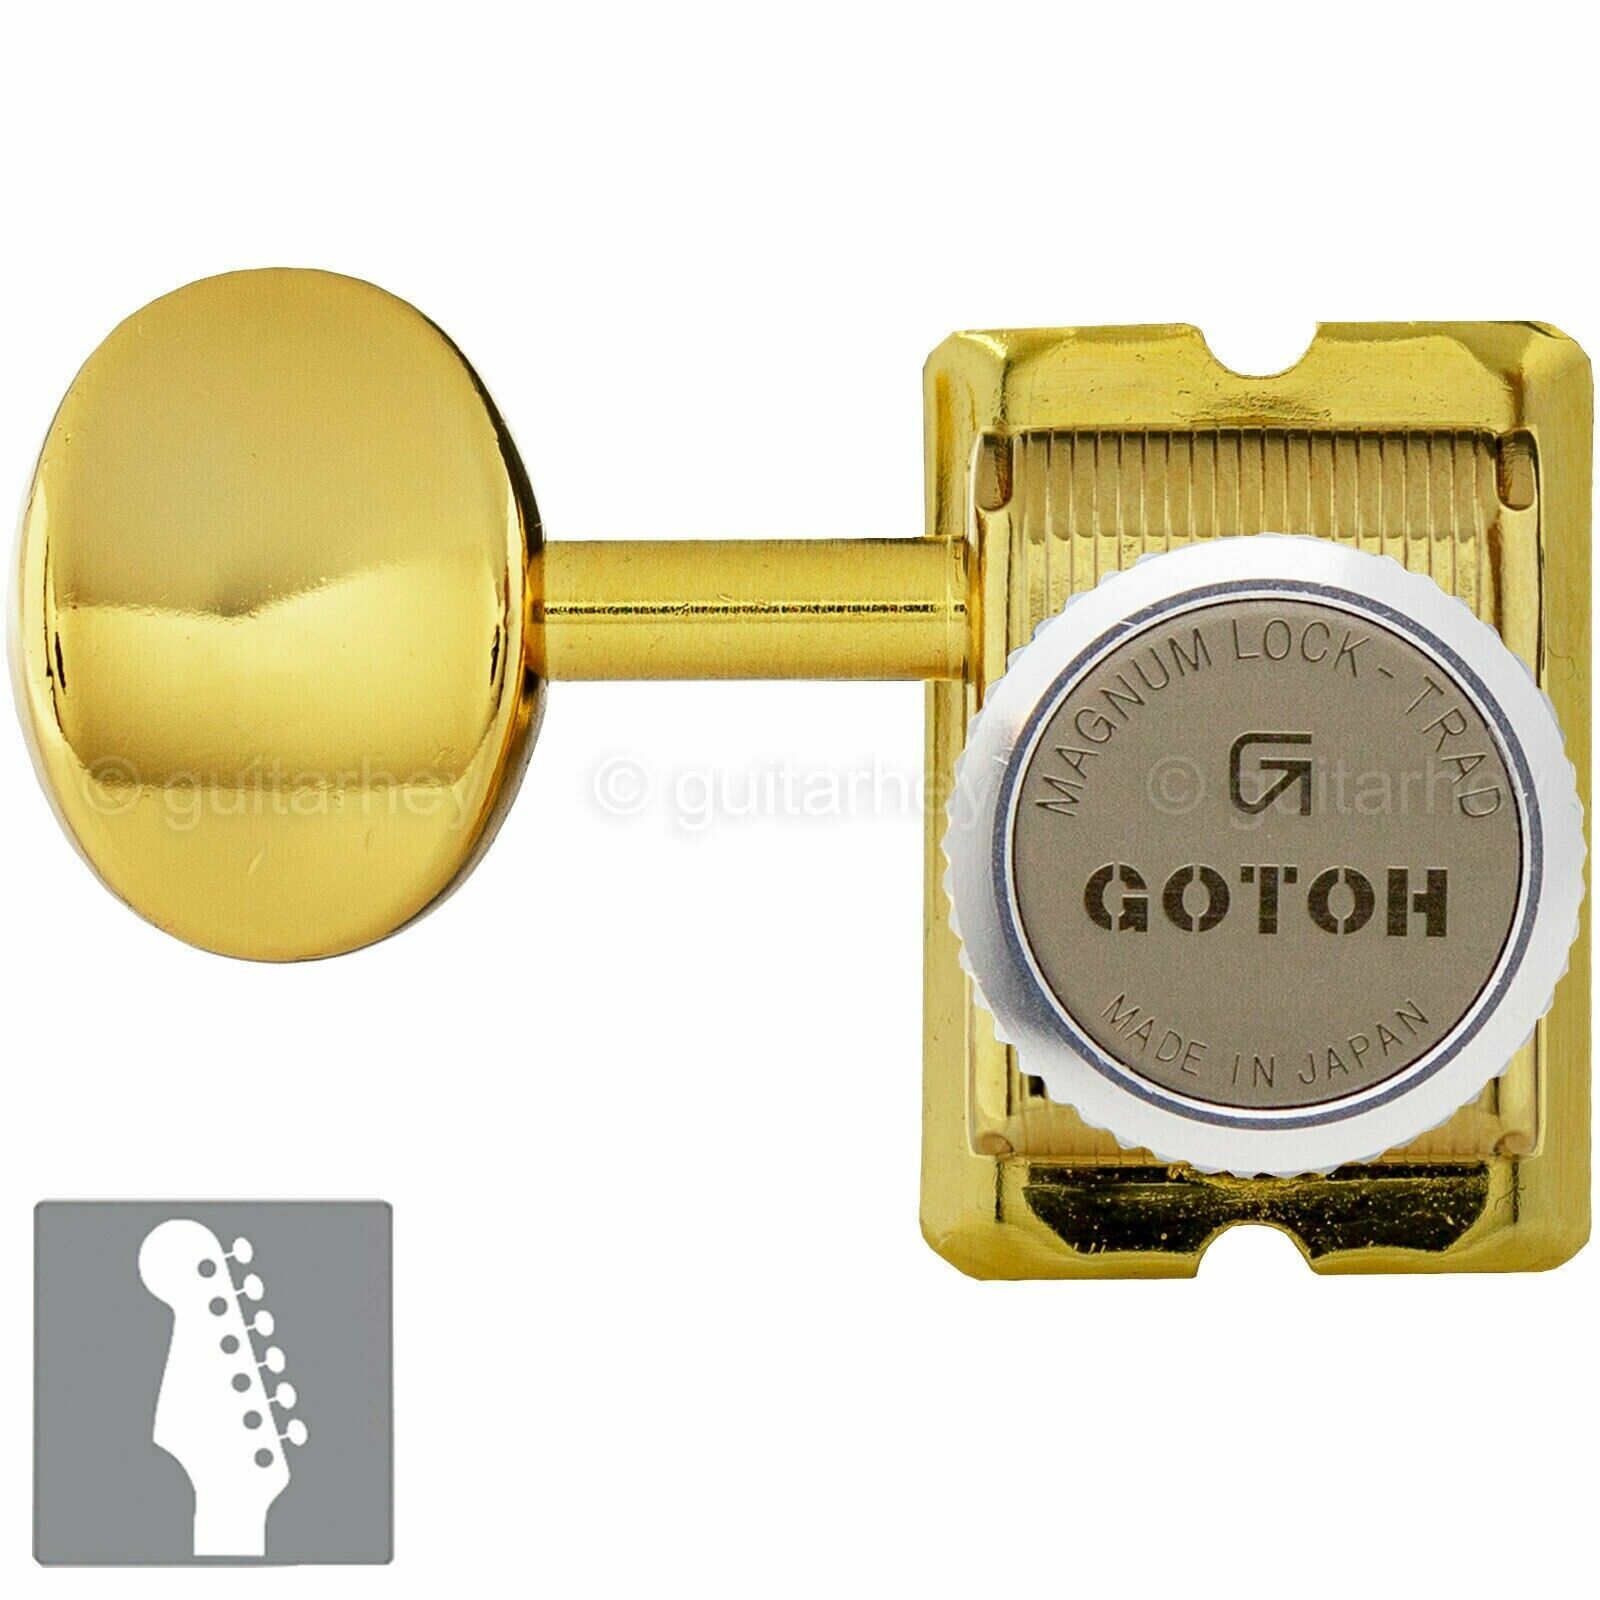 NEW Gotoh SD91-05M MGT Locking Tuners Set 6 in line STAGGErot LEFT-HANDED - Gold